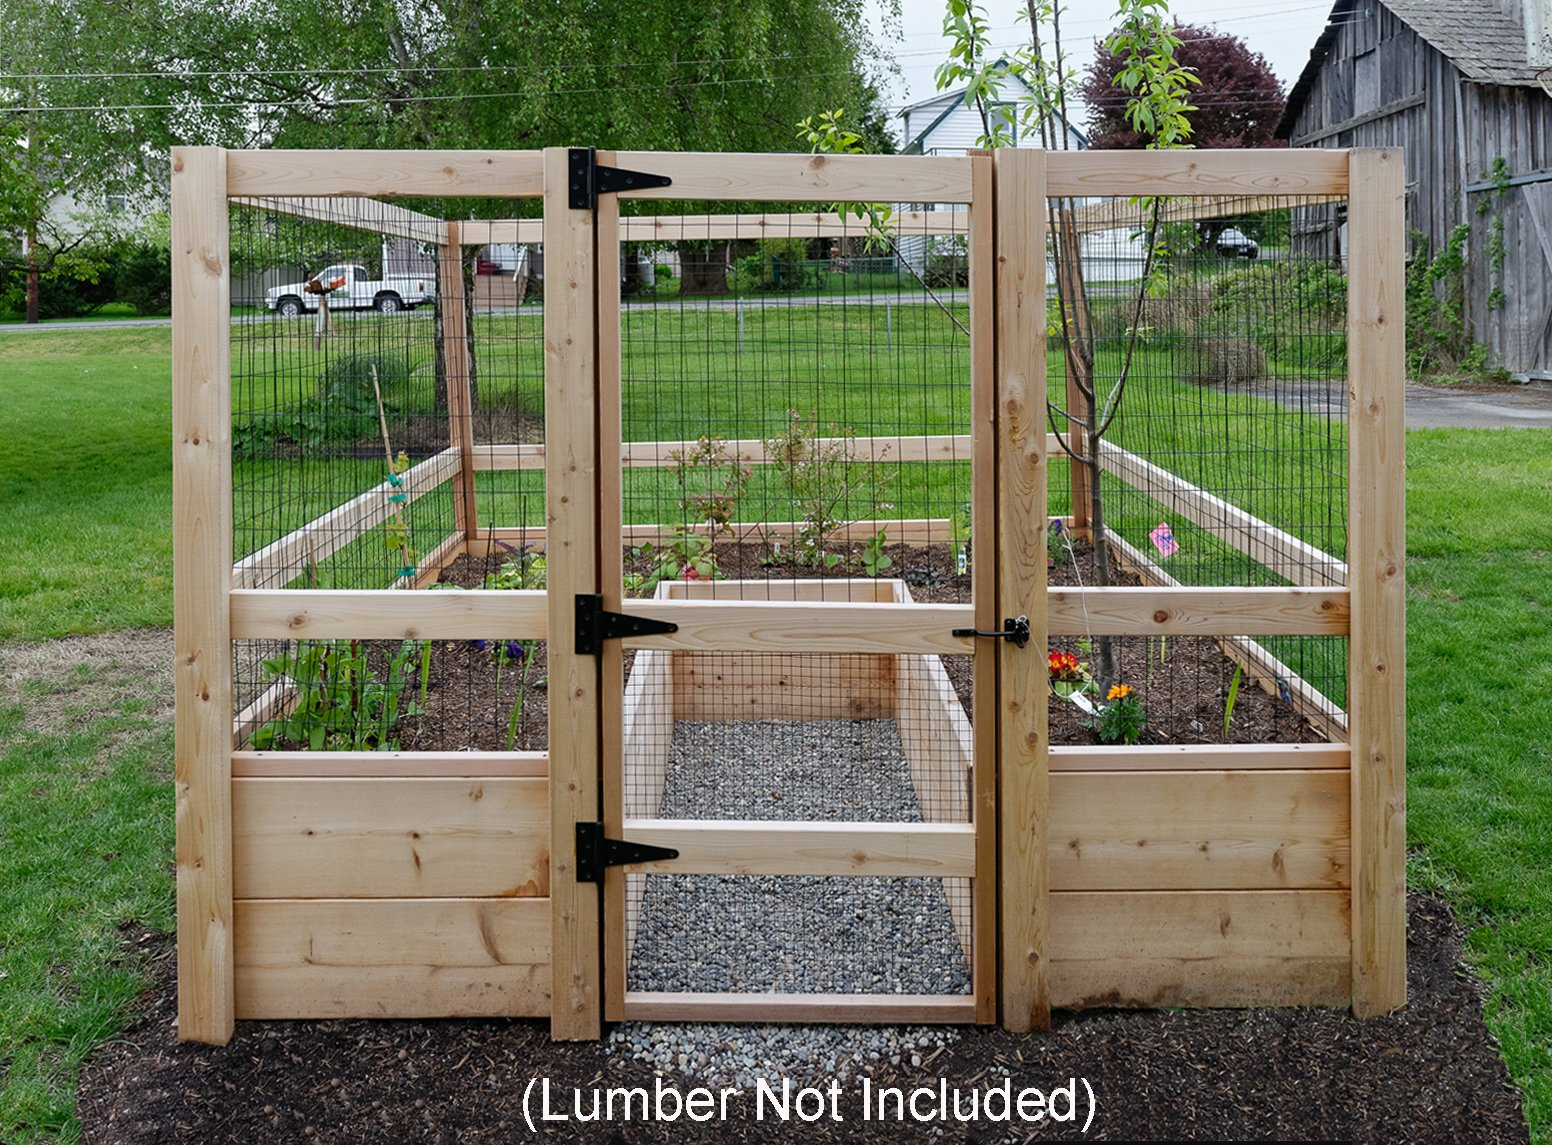 Deer-proof Just Add Lumber Vegetable Garden Kit - 8'x8' by Gardens To Gro